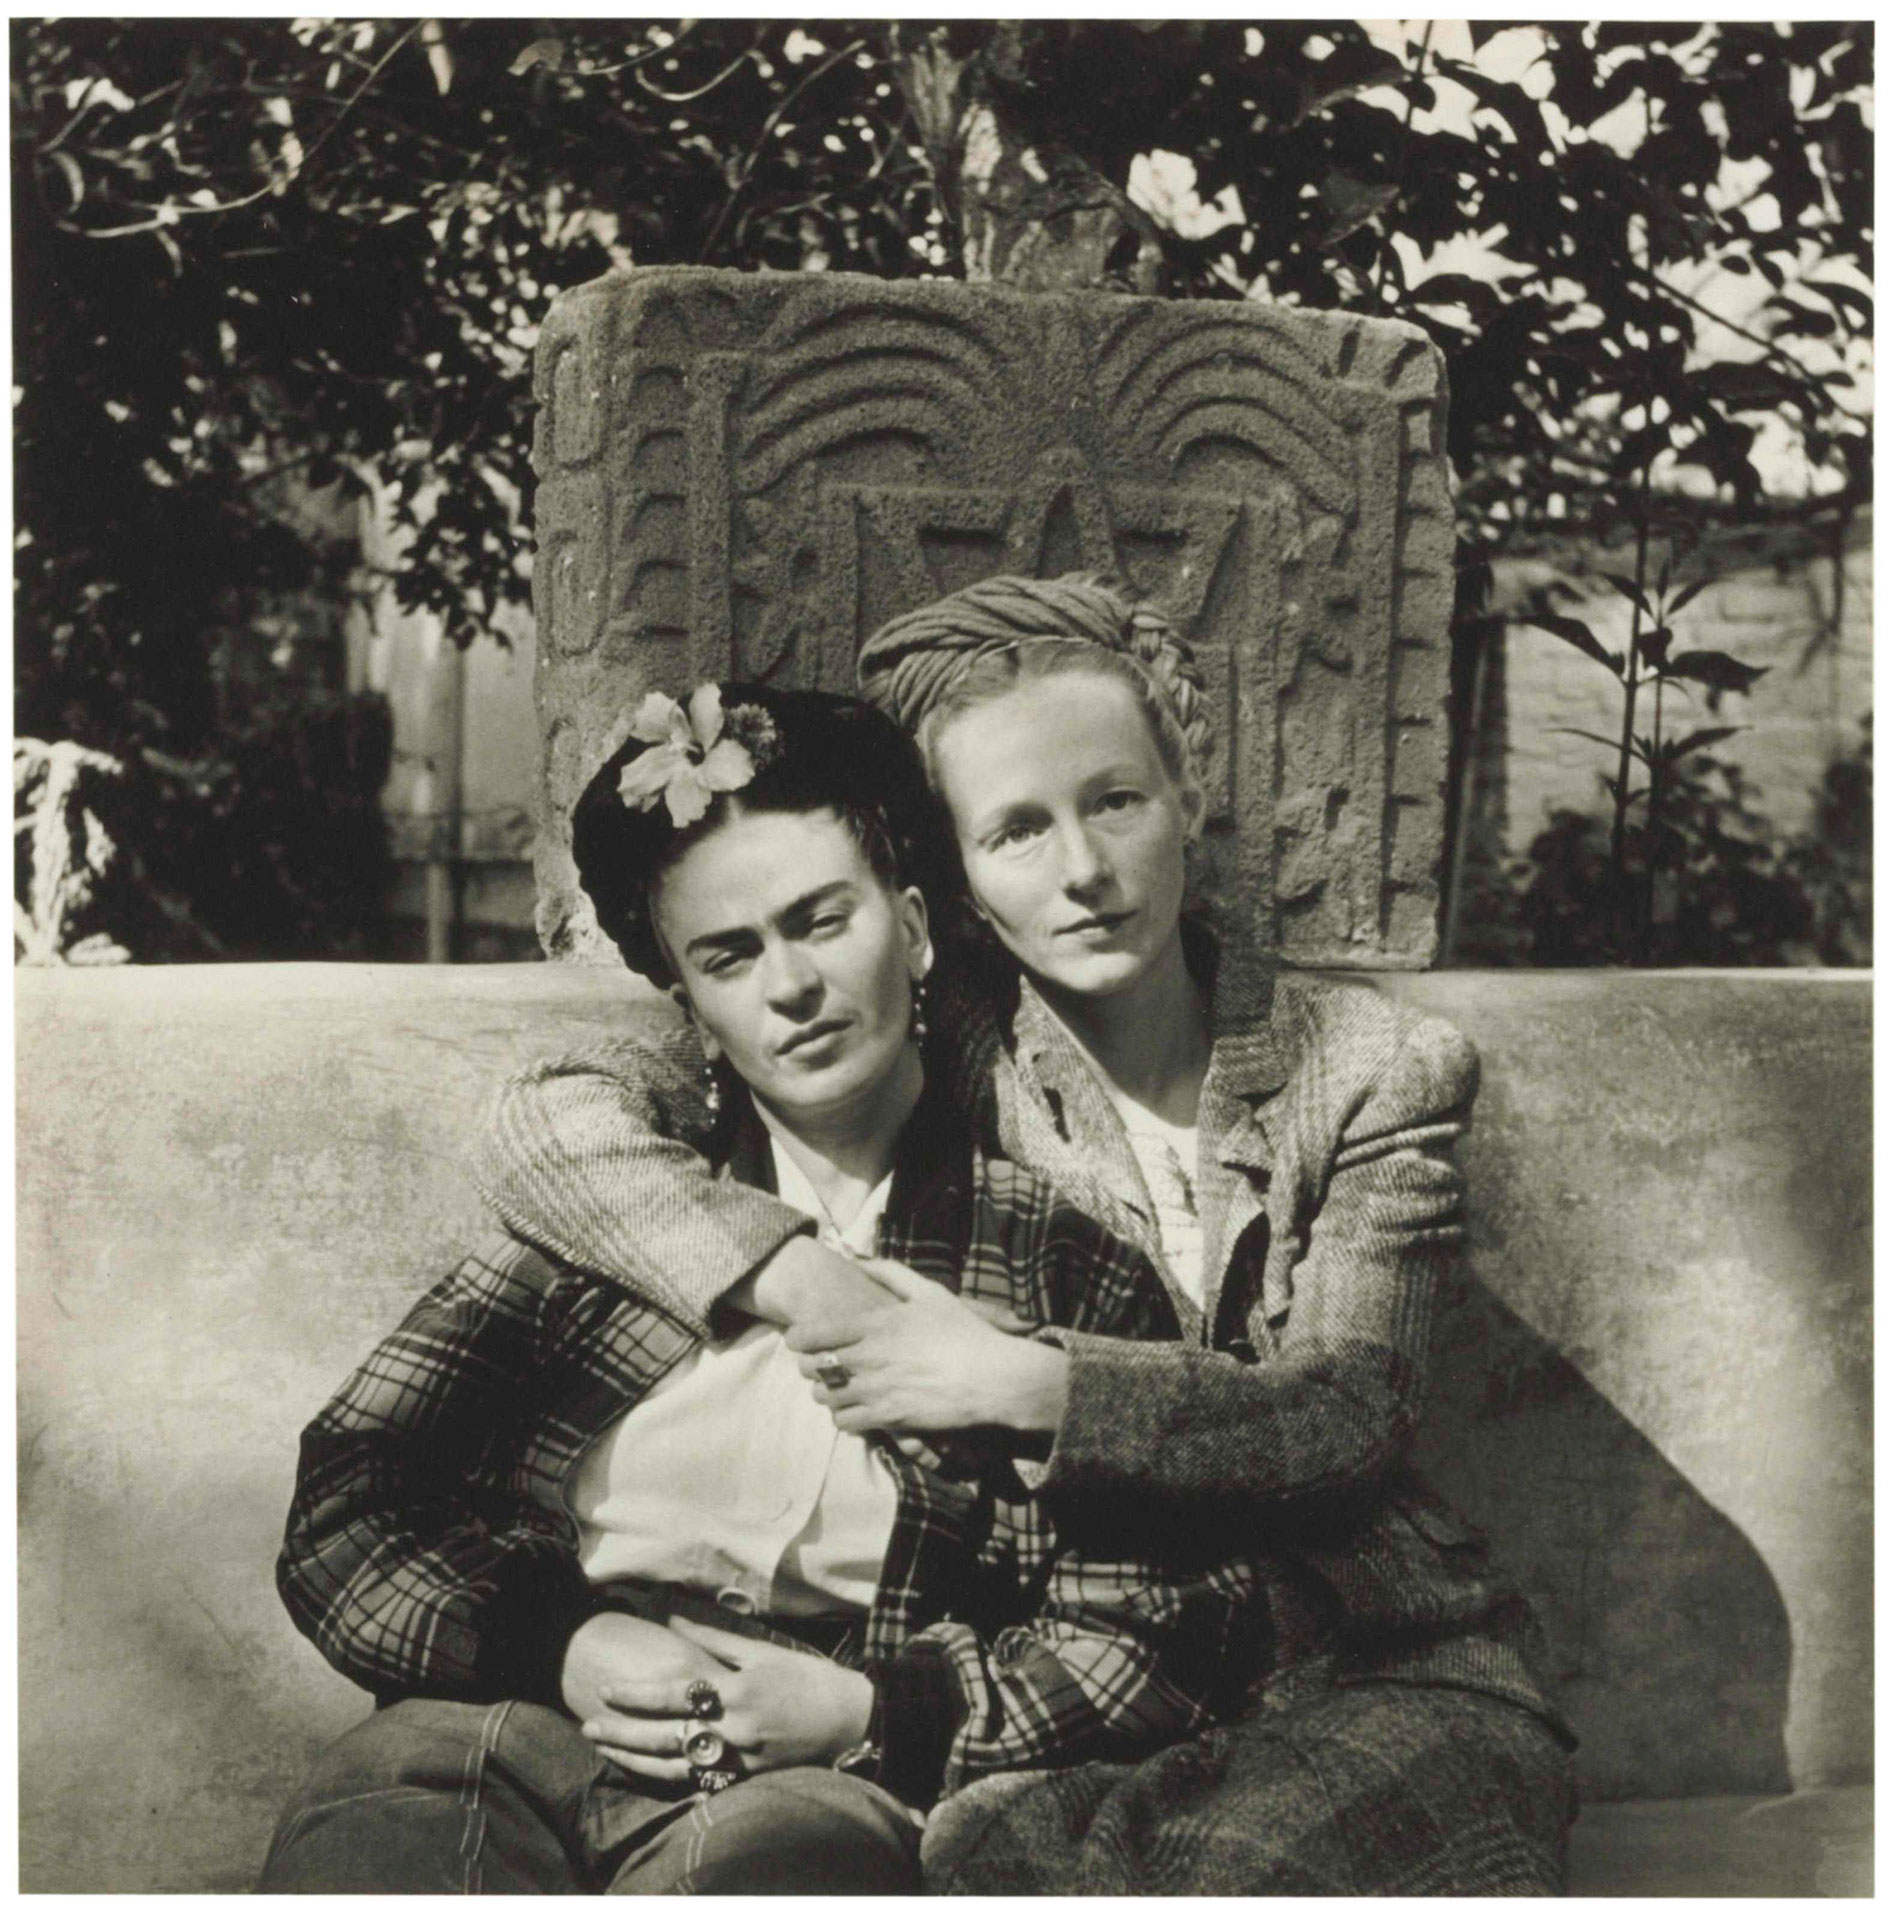 Diego M. Rivera, Frida Kahlo and Emmy Lou Packard, Coyoacan, 1941, 1941, platinum palladium print. Collection of the Kalamazoo Institute of Arts; Permanent Collection Fund Purchase, 2003.24